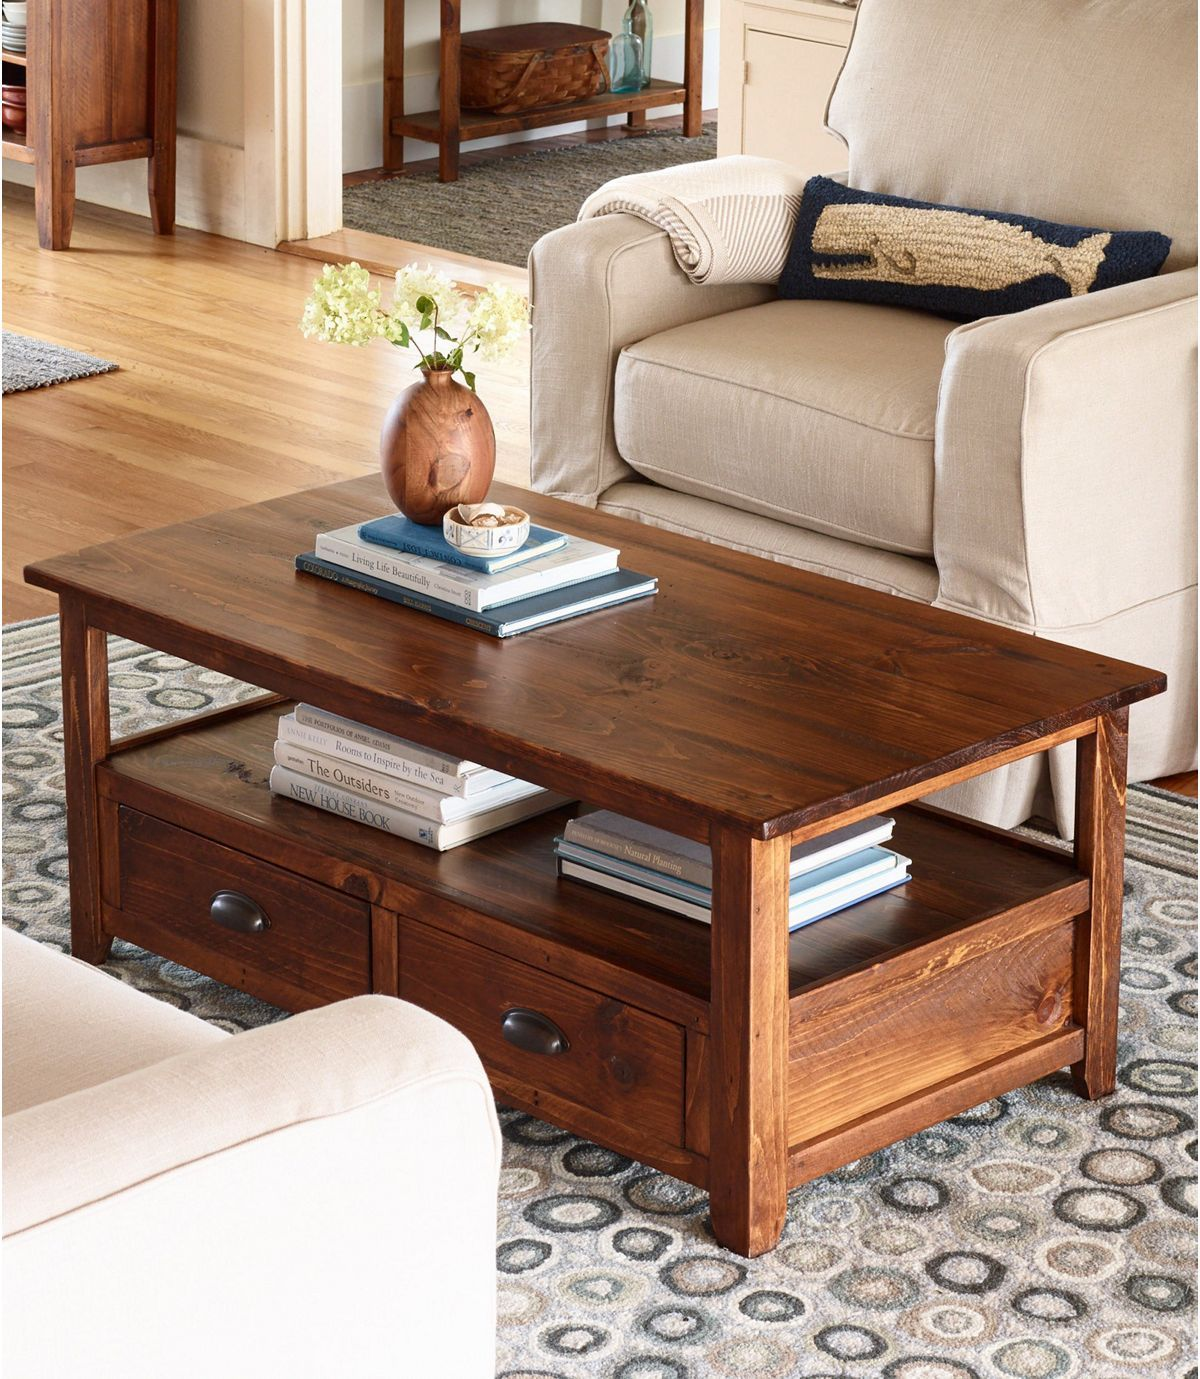 Rustic Wooden Coffee Table In 2021 Wooden Coffee Table Rustic Wooden Coffee Table Coffee Table Design [ 1379 x 1200 Pixel ]